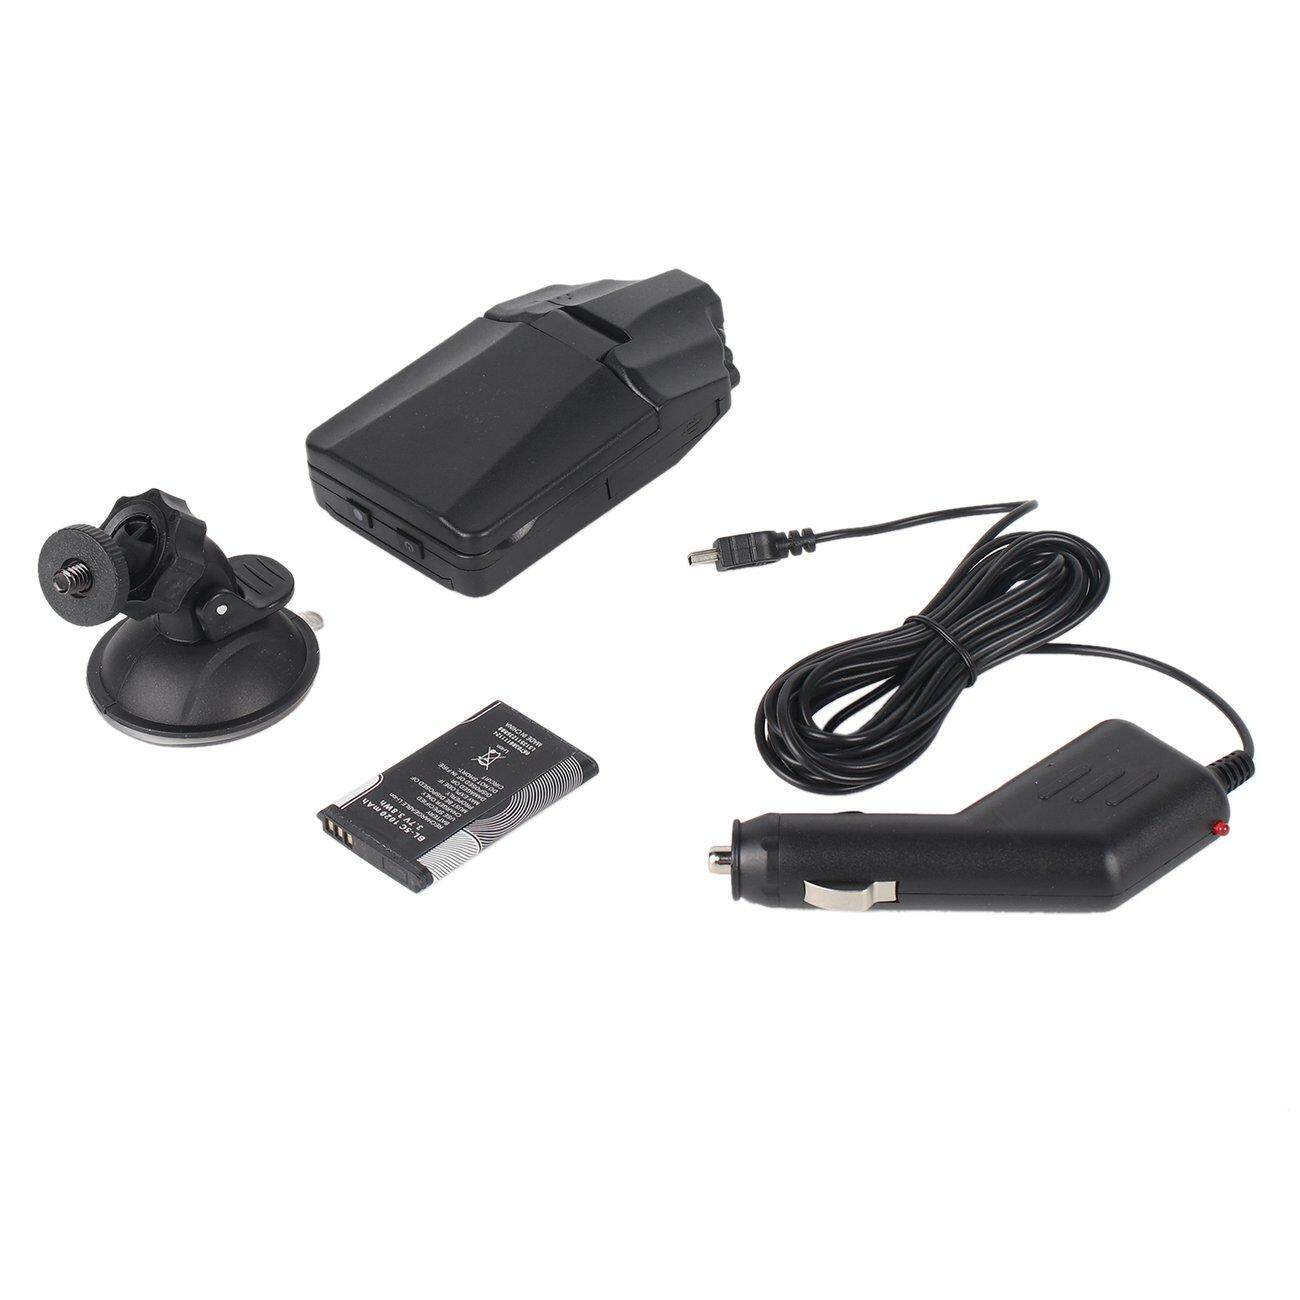 UINN Aircraft Head Hd Driving Recorder 1080p Infrared Night Vision Wide Angle